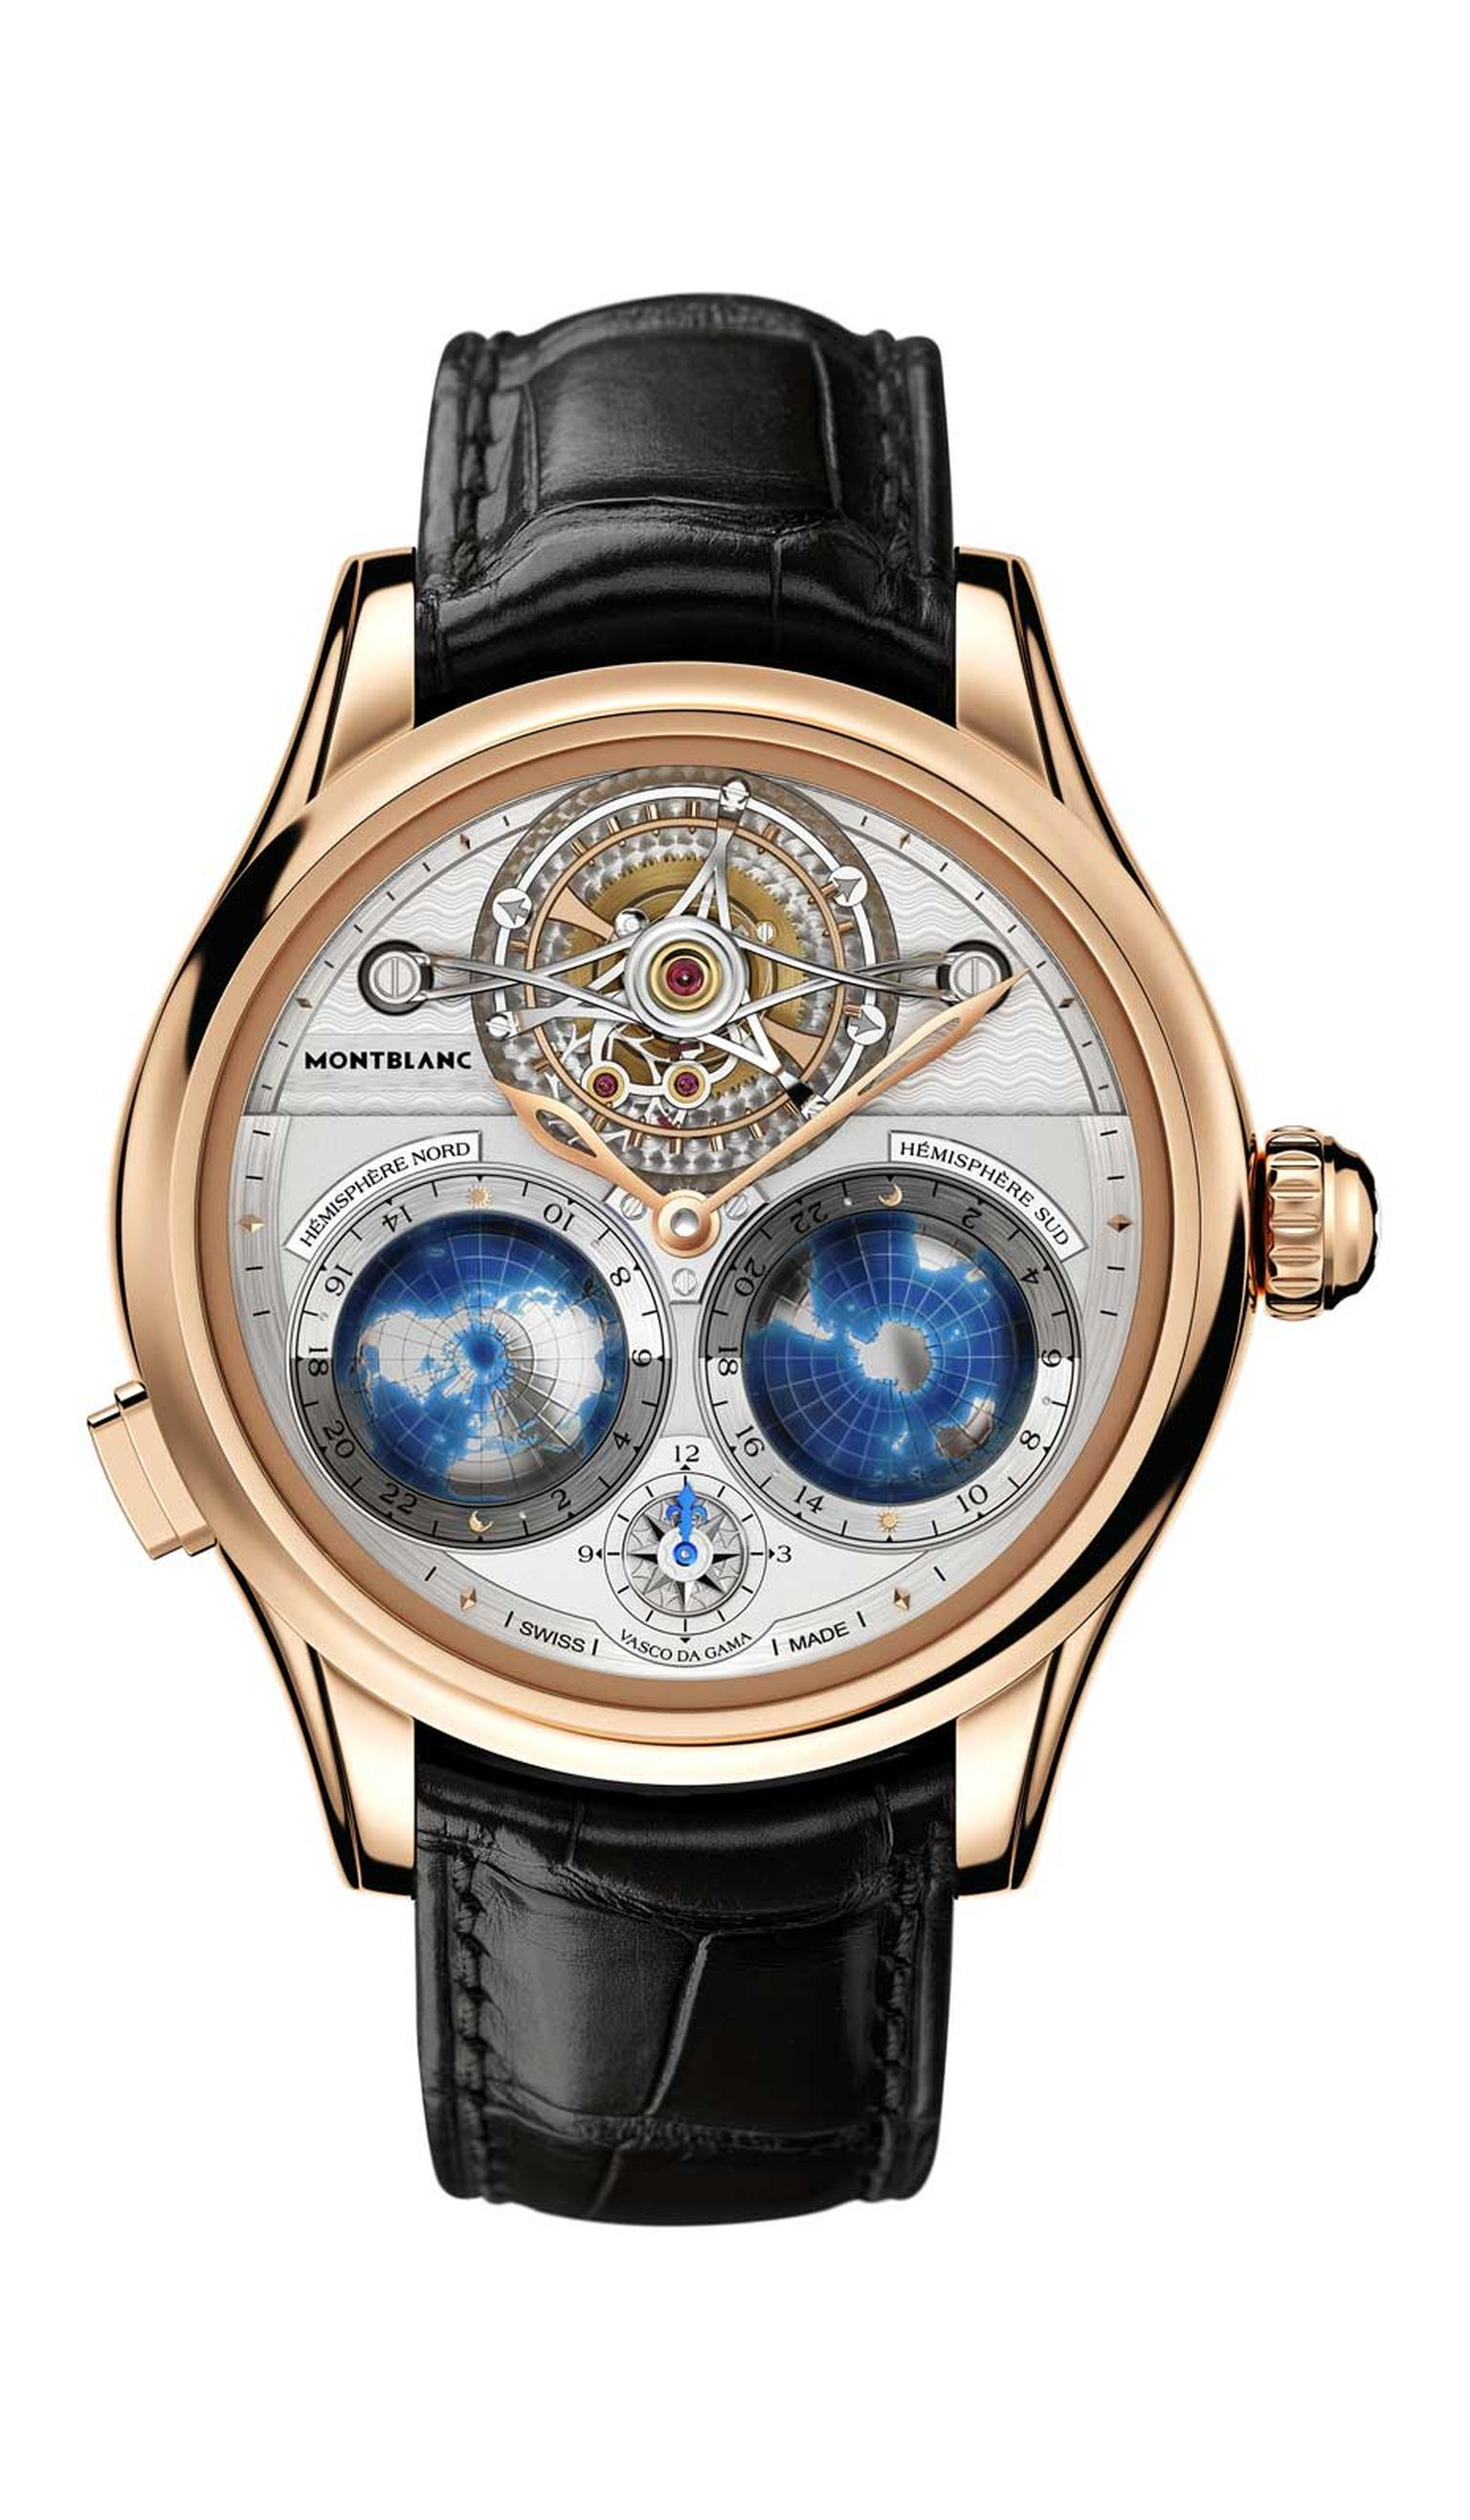 Monblanc Tourbillon Cylindrique Geosphères Vasco da Gama celebrates the voyage of Portuguese explorer Vasco da Gama who discovered a way to India by sea. And in doing so, he built a bridge across the Northern and Southern hemispheres.